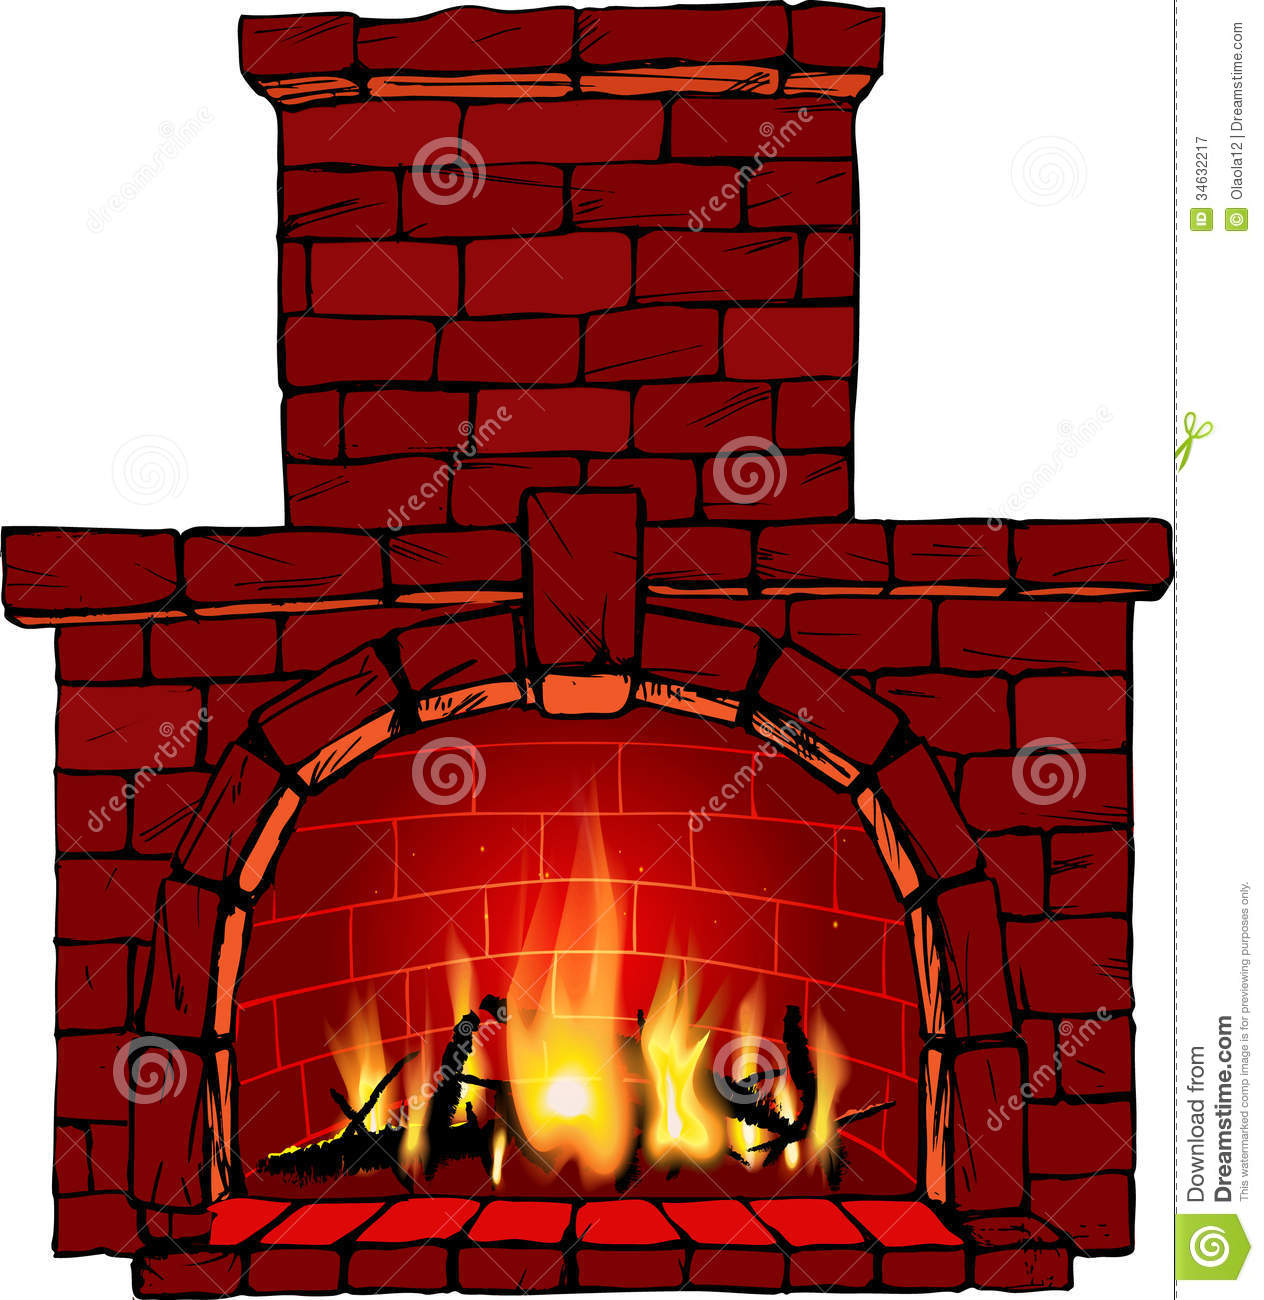 Brick Fireplace Clip Art Fireplace